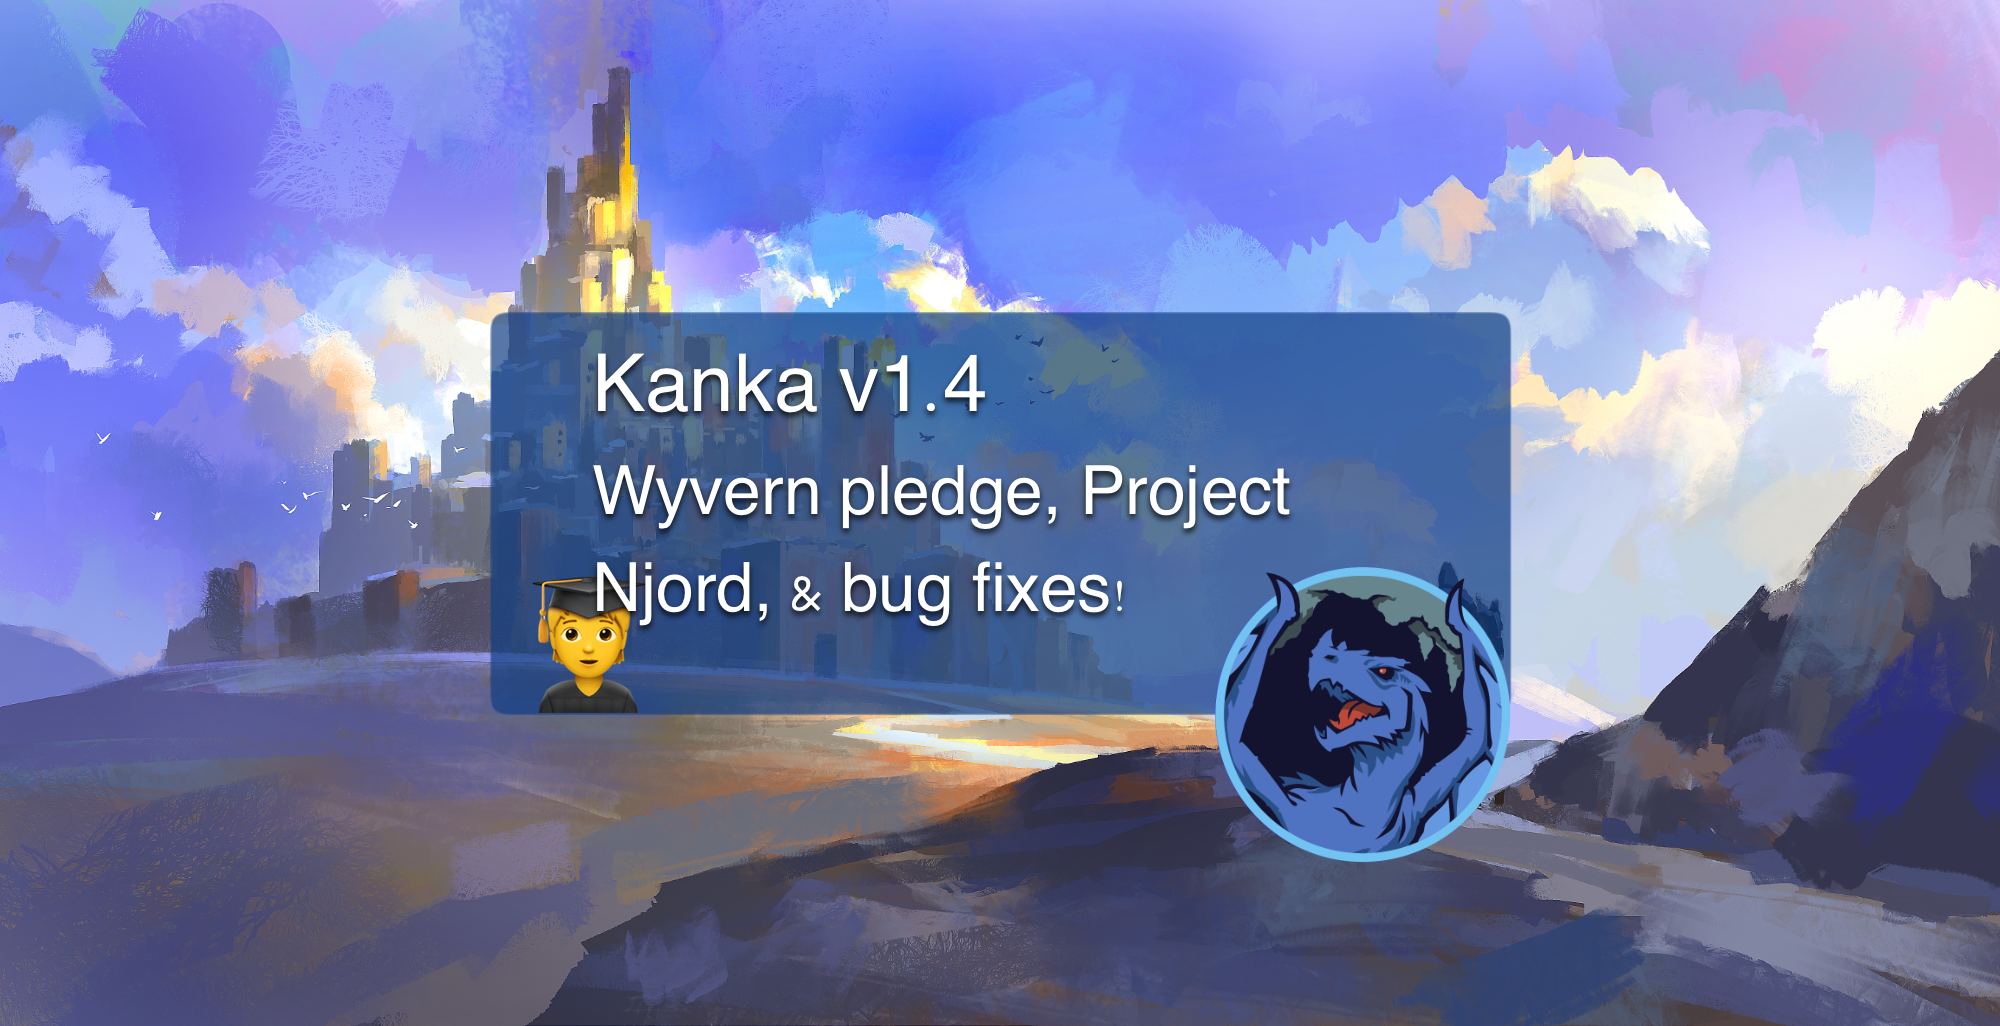 Kanka 1.4 wyvern pledge